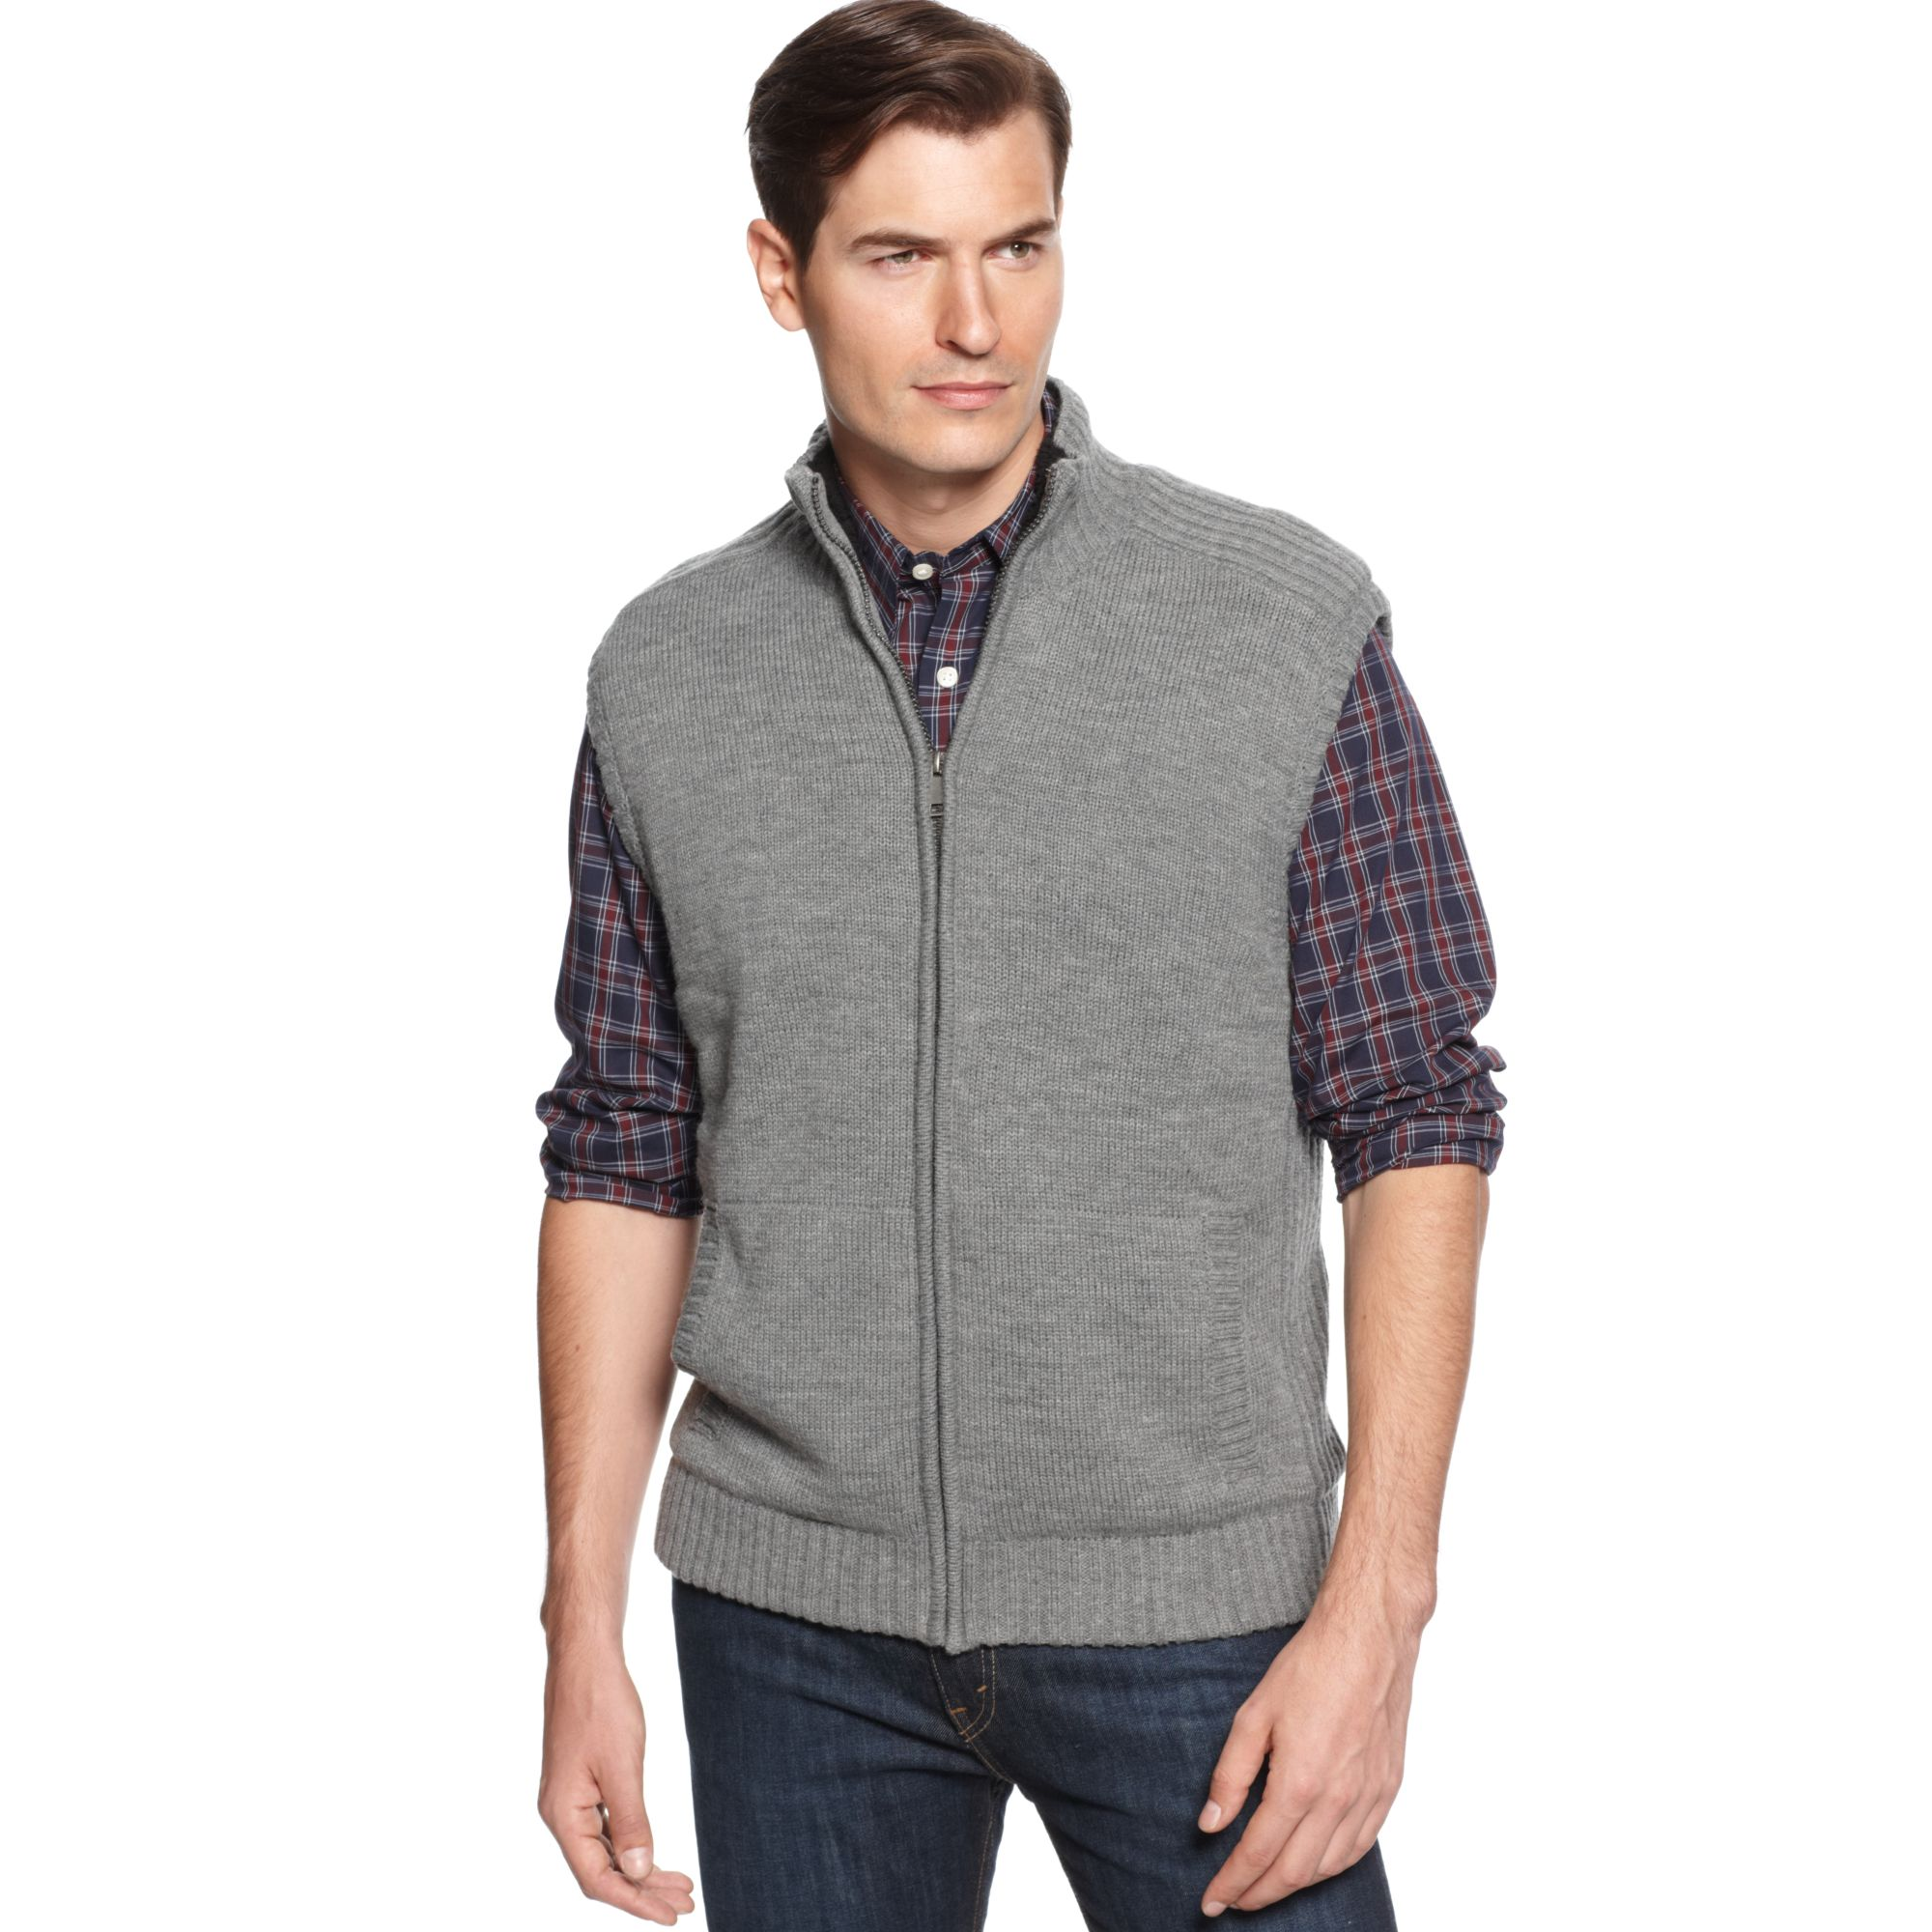 Oscar De La Renta Mens Sweater Vest - English Sweater Vest